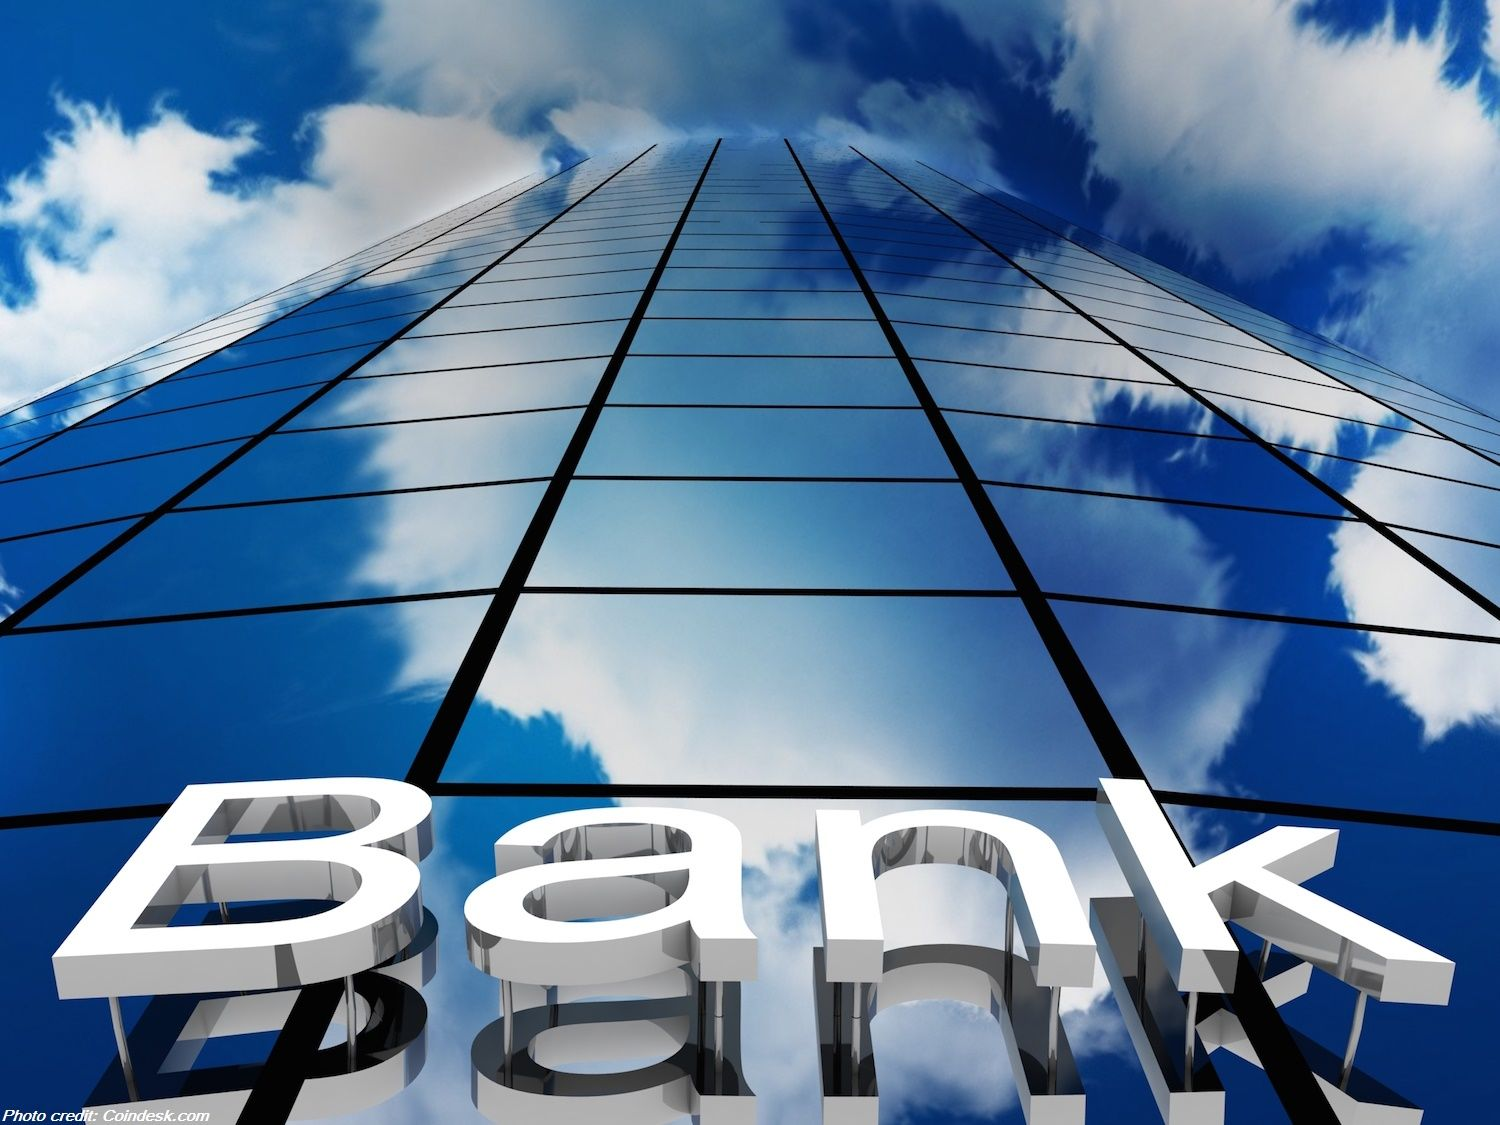 Macroeconomic theory states that everything that is saved up should be invested.  That's why banks exist--to be the mediator between savers and borrowers, who are assumed to be borrowing money to put up investments.